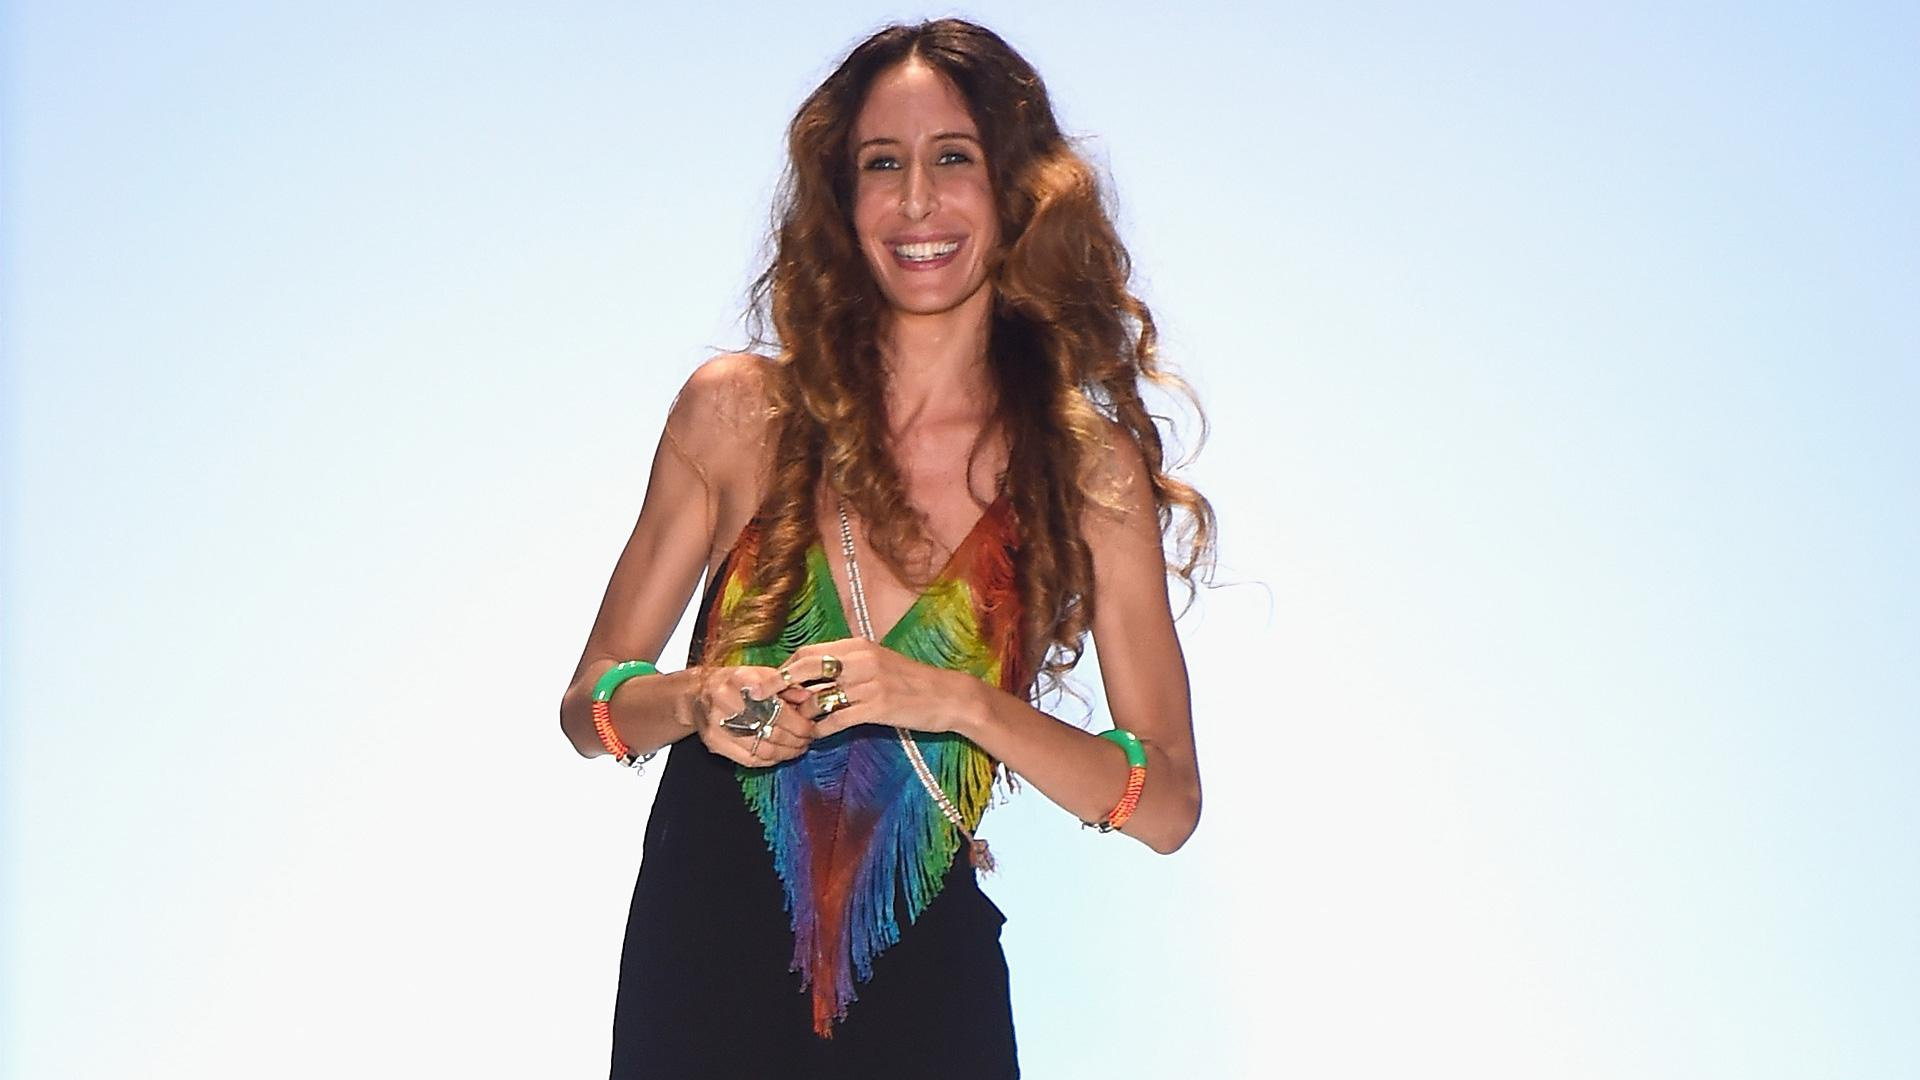 Mara Hoffman is taking a lighter approach to fashion this season